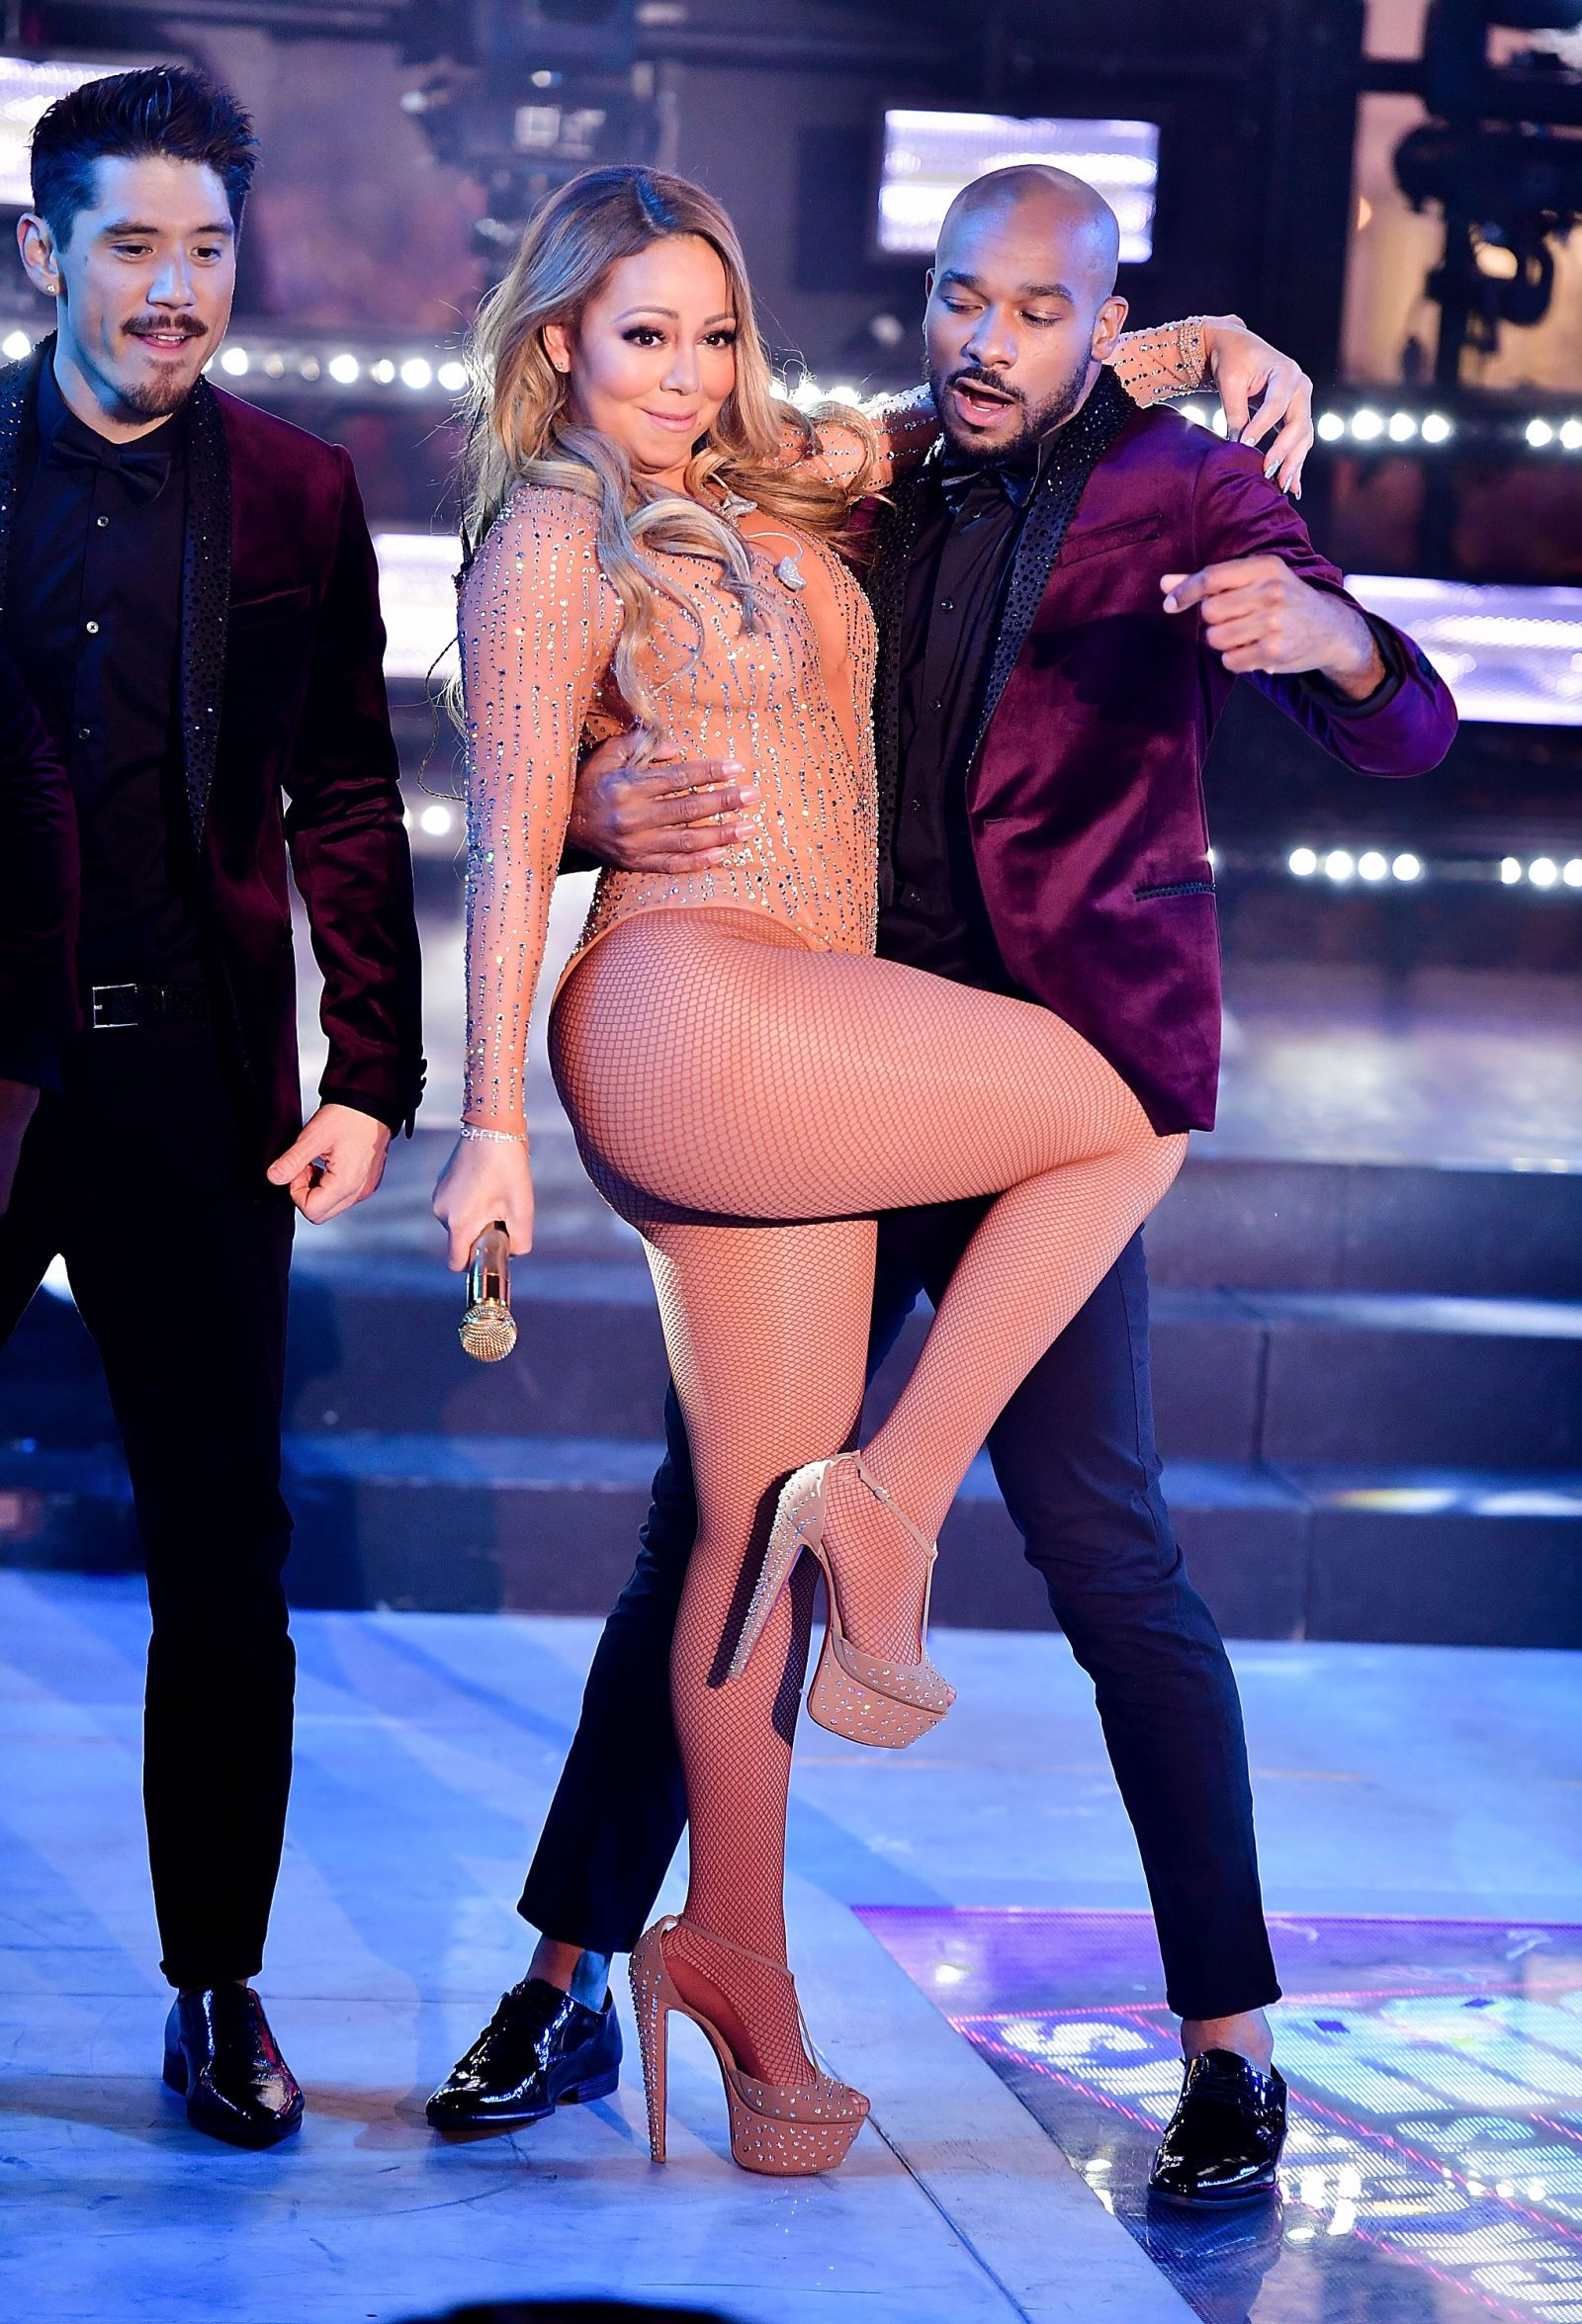 The 17 Most Savage Reactions to Mariah Carey's Disastrous NYE Performance